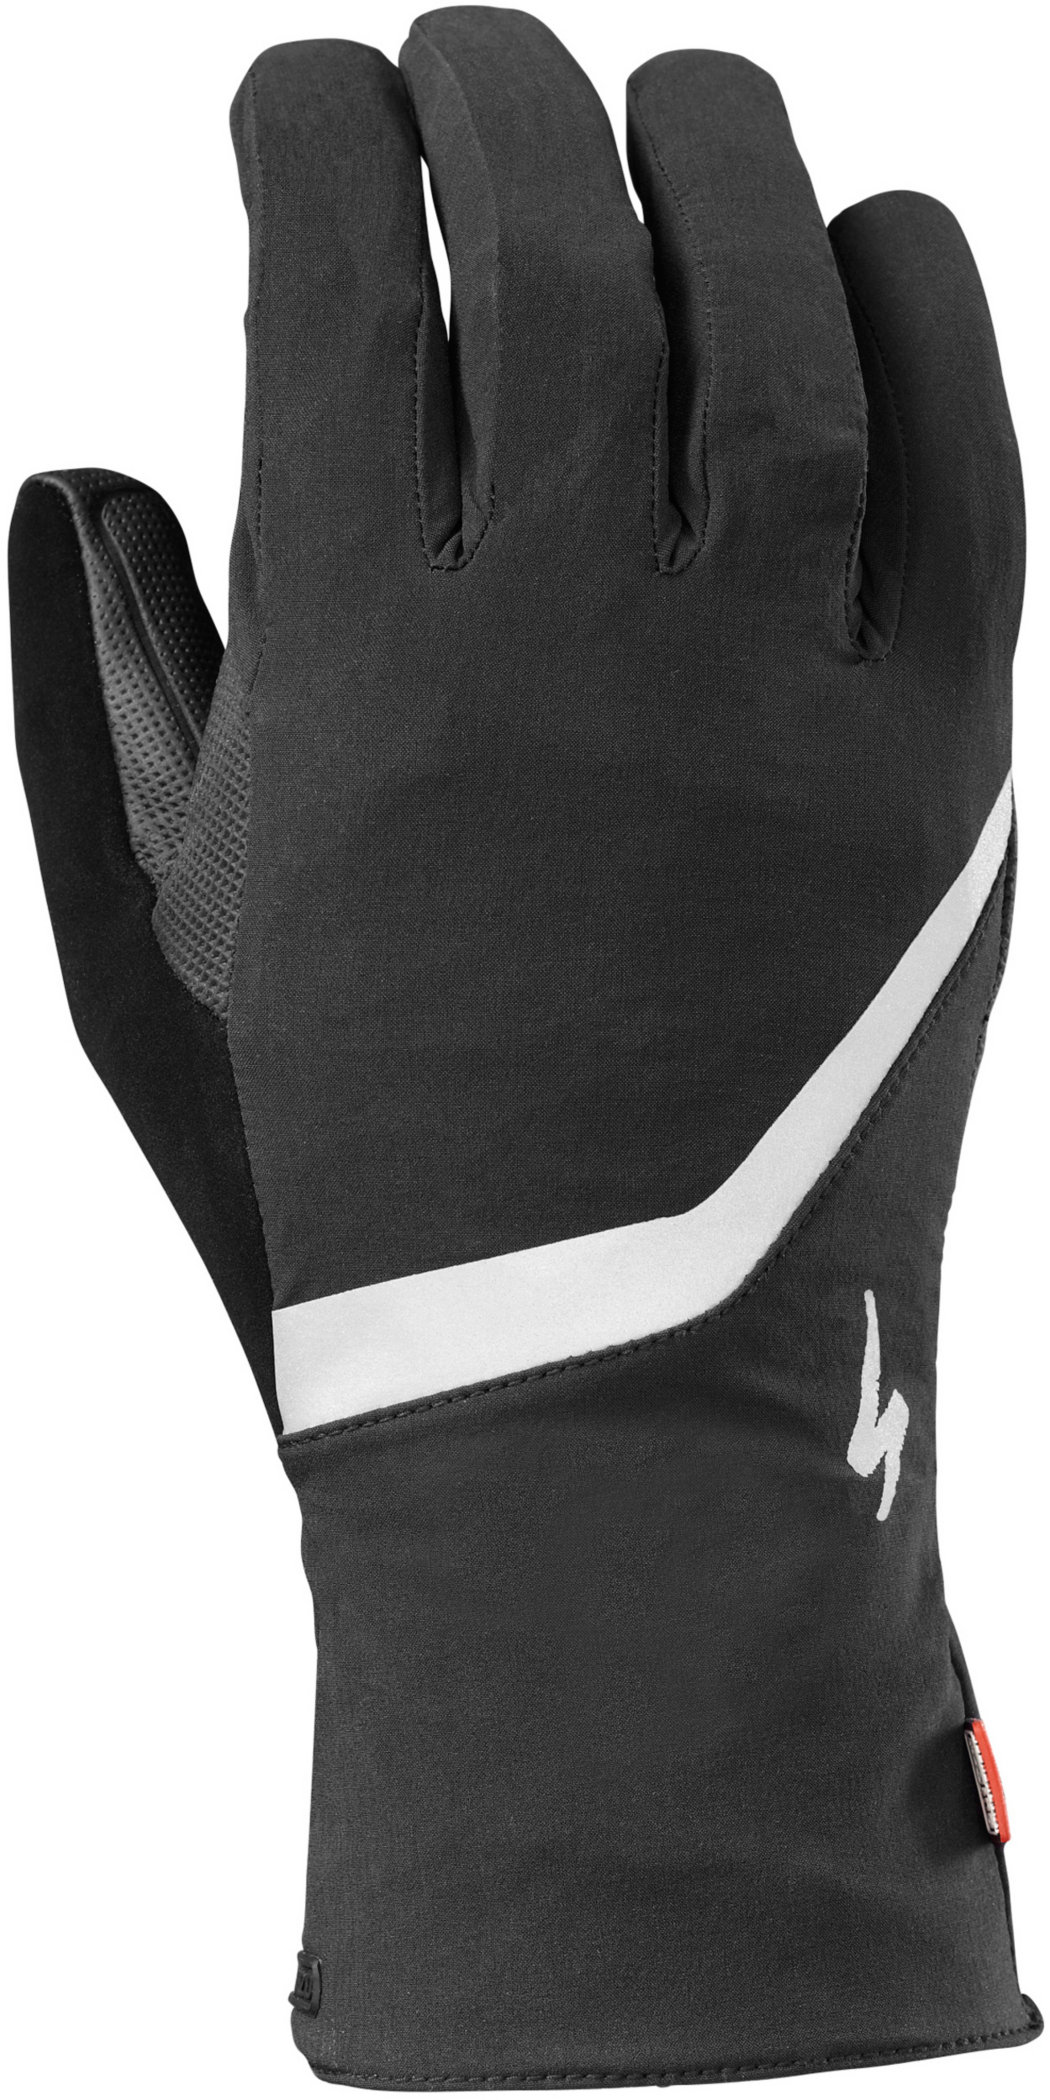 Specialized Deflect H2O Gloves Black/Black L - Alpha Bikes